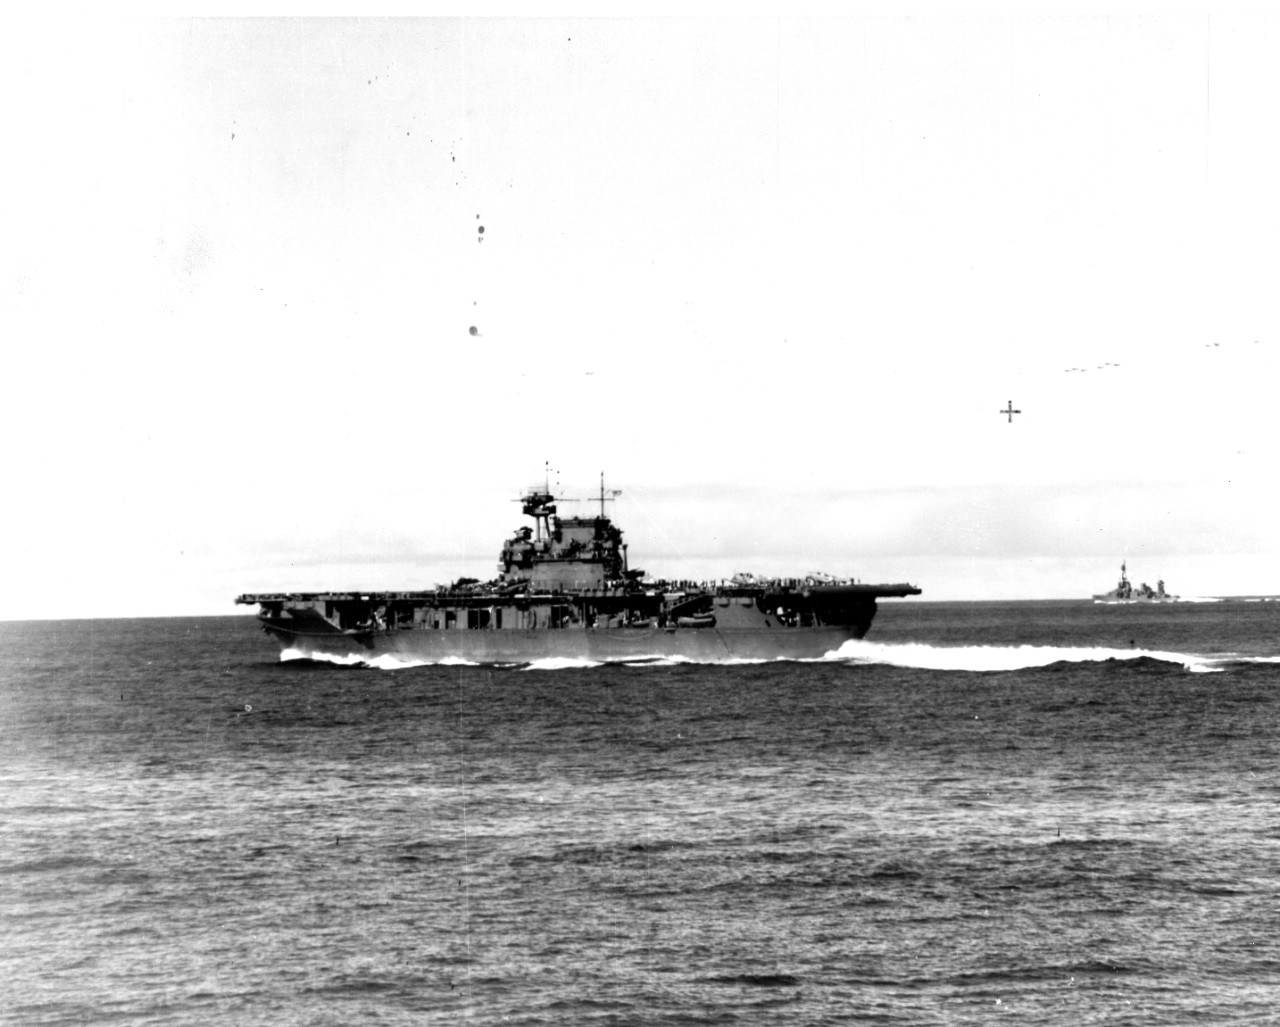 A sailor on board Pensacola snaps this picture of Enterprise as she steams at high speed during the Battle of Midway, at about 0725 on 4 June 1942. The carrier has just launched Dauntlesses of VB-6 and VS-6, and is striking her unlaunched bombers below to prepare to launch Wildcats of VF-6 and Devastators of VT-6. Some SBDs orbit overhead while they await the launch of additional planes, and Northampton (far right) faithfully shepherds Enterprise. (U.S. Navy Photograph 80-G-32225, National Archives and Records Administration, Still Pictures Branch, College Park, Md.)